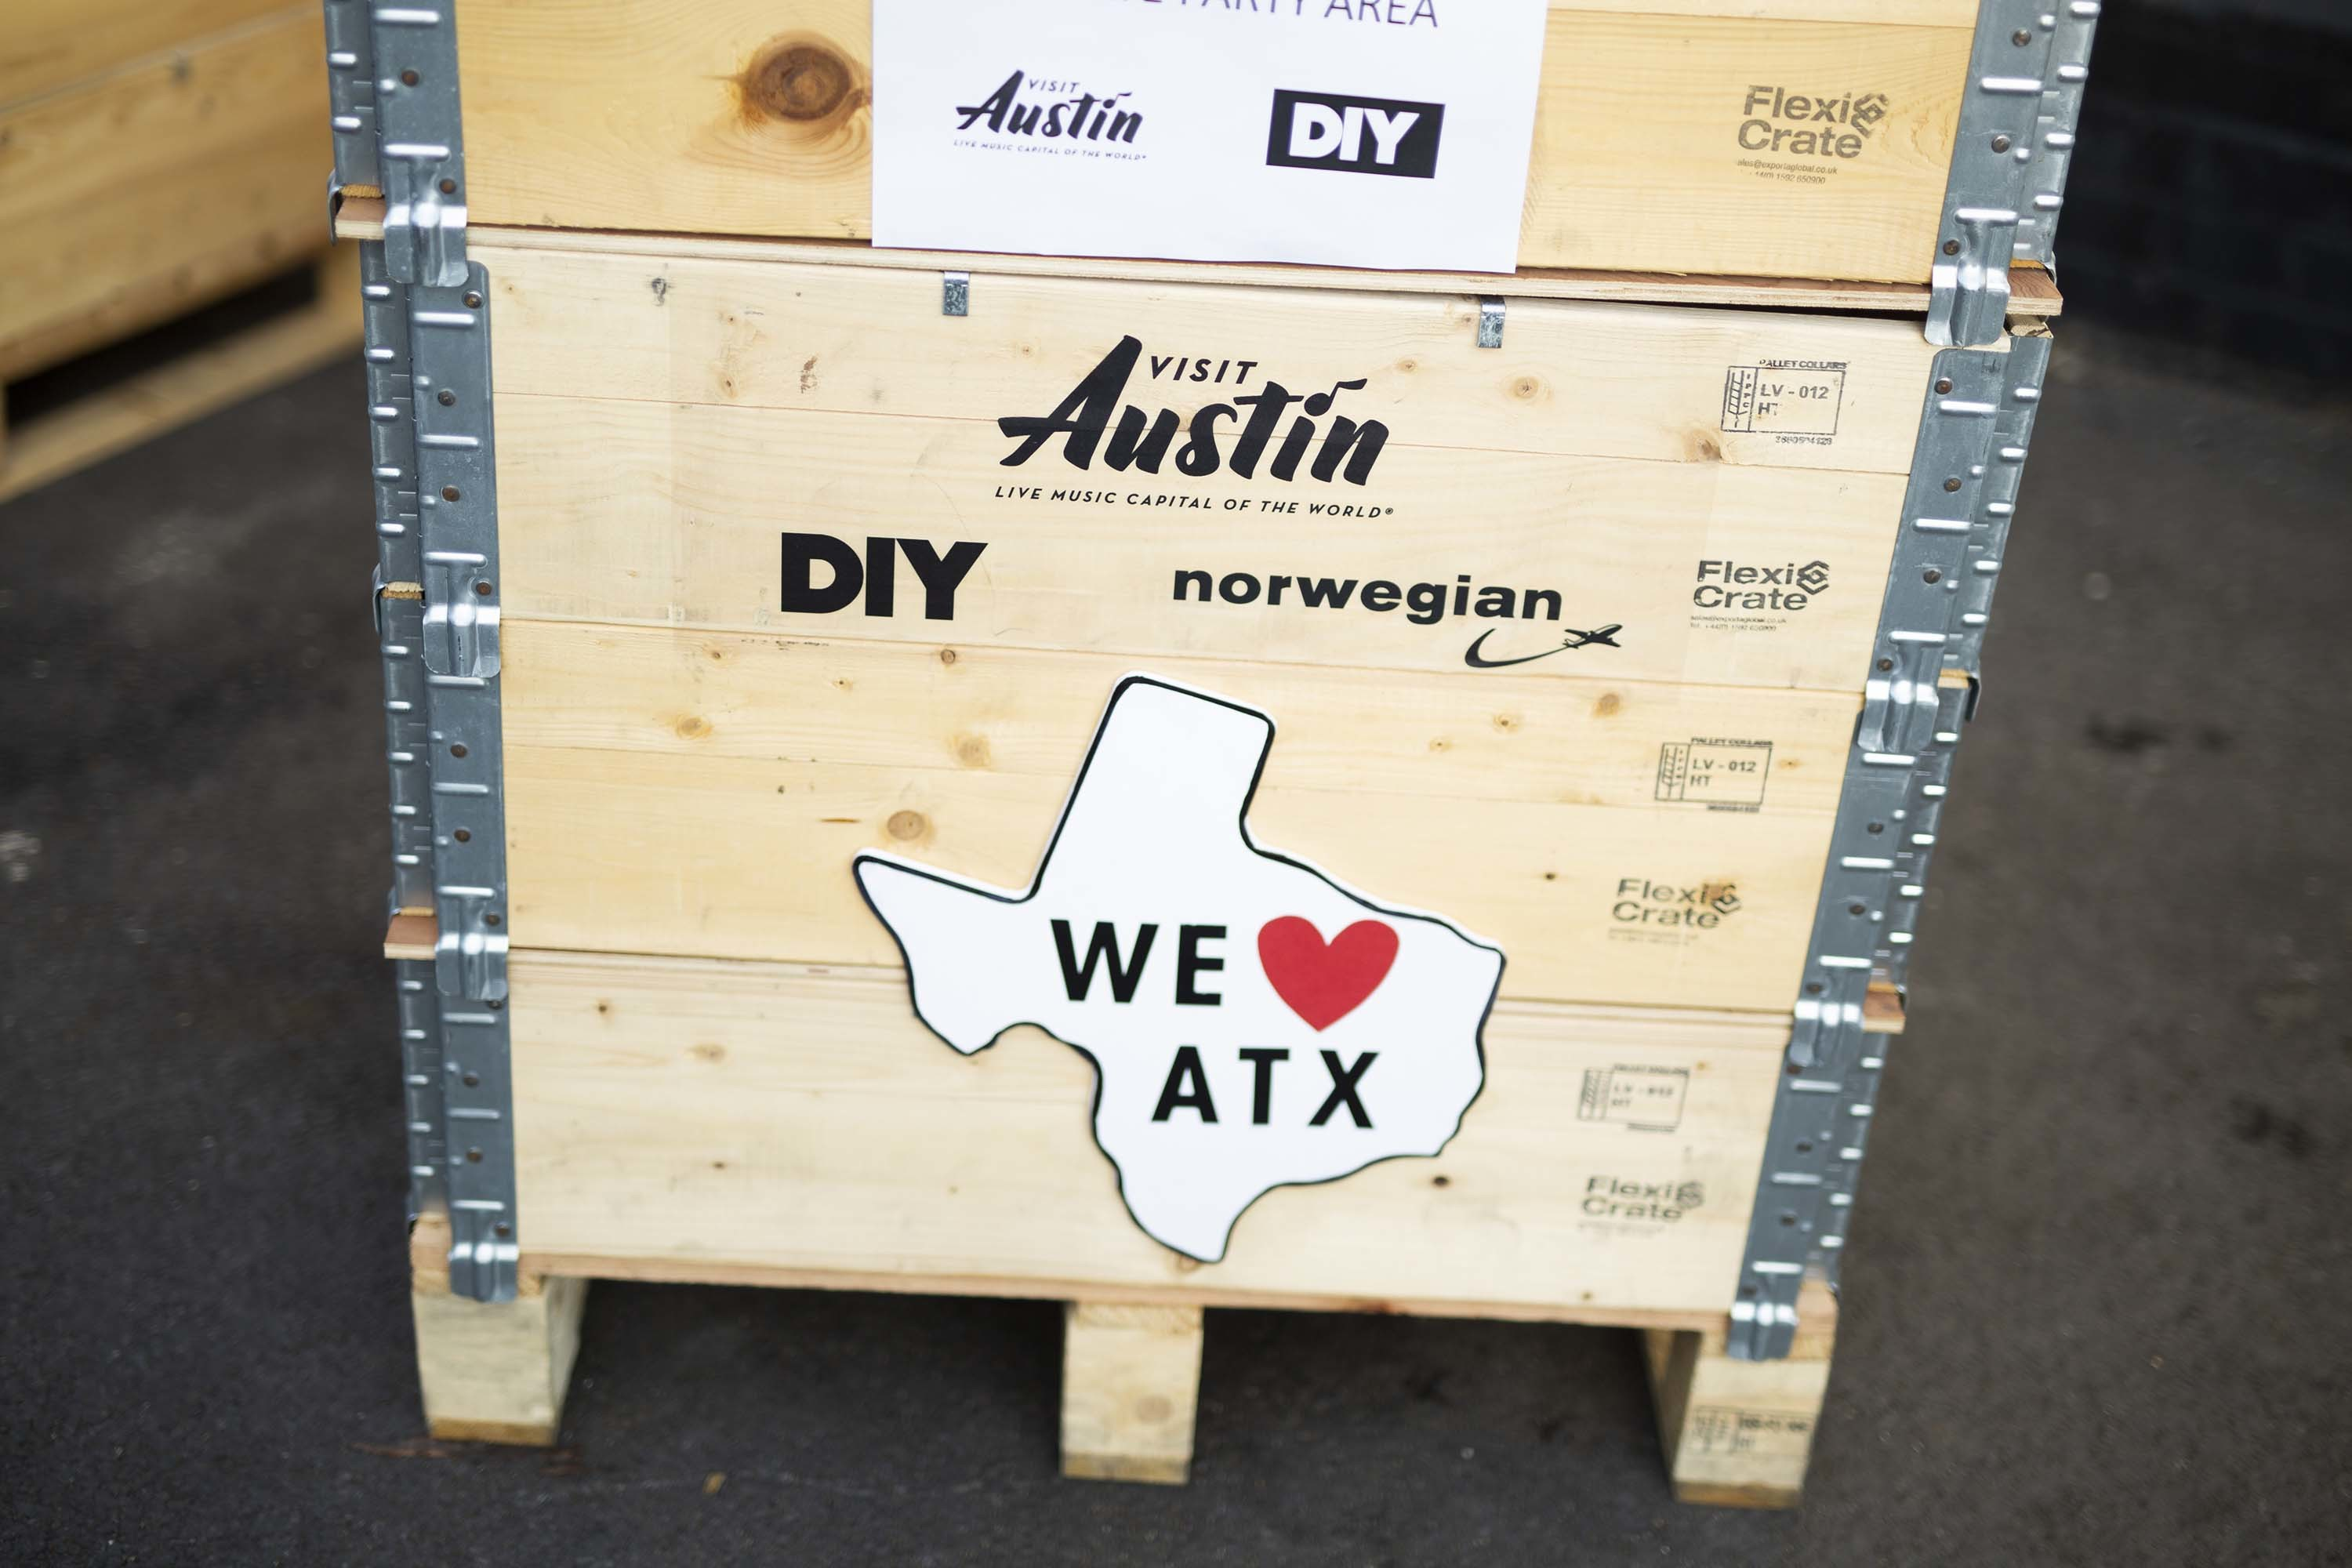 Win a holiday to Austin, Texas - the Live Music Capital of the World® - with Visit Austin